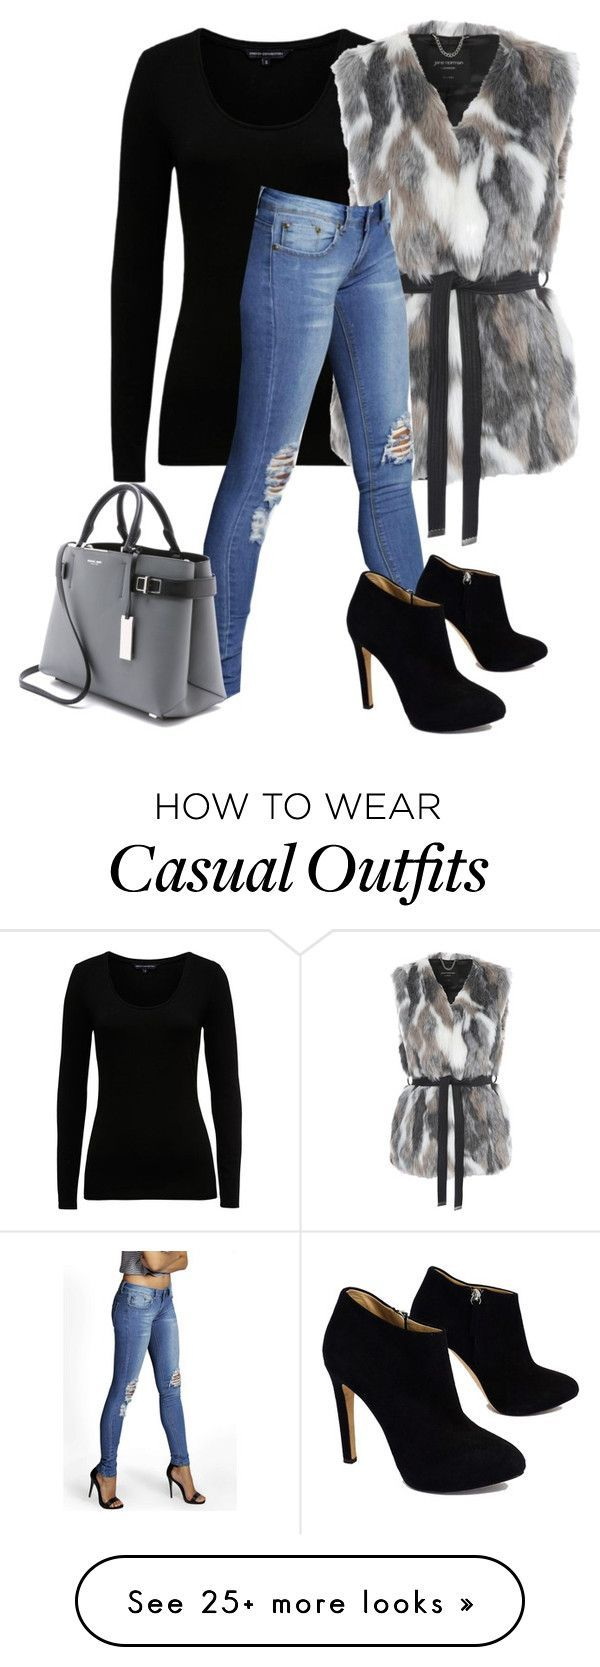 Winter Casual by billi29 on Polyvore featuring French Connection, Jane Norman, Giuseppe Zanotti and Michael Kors